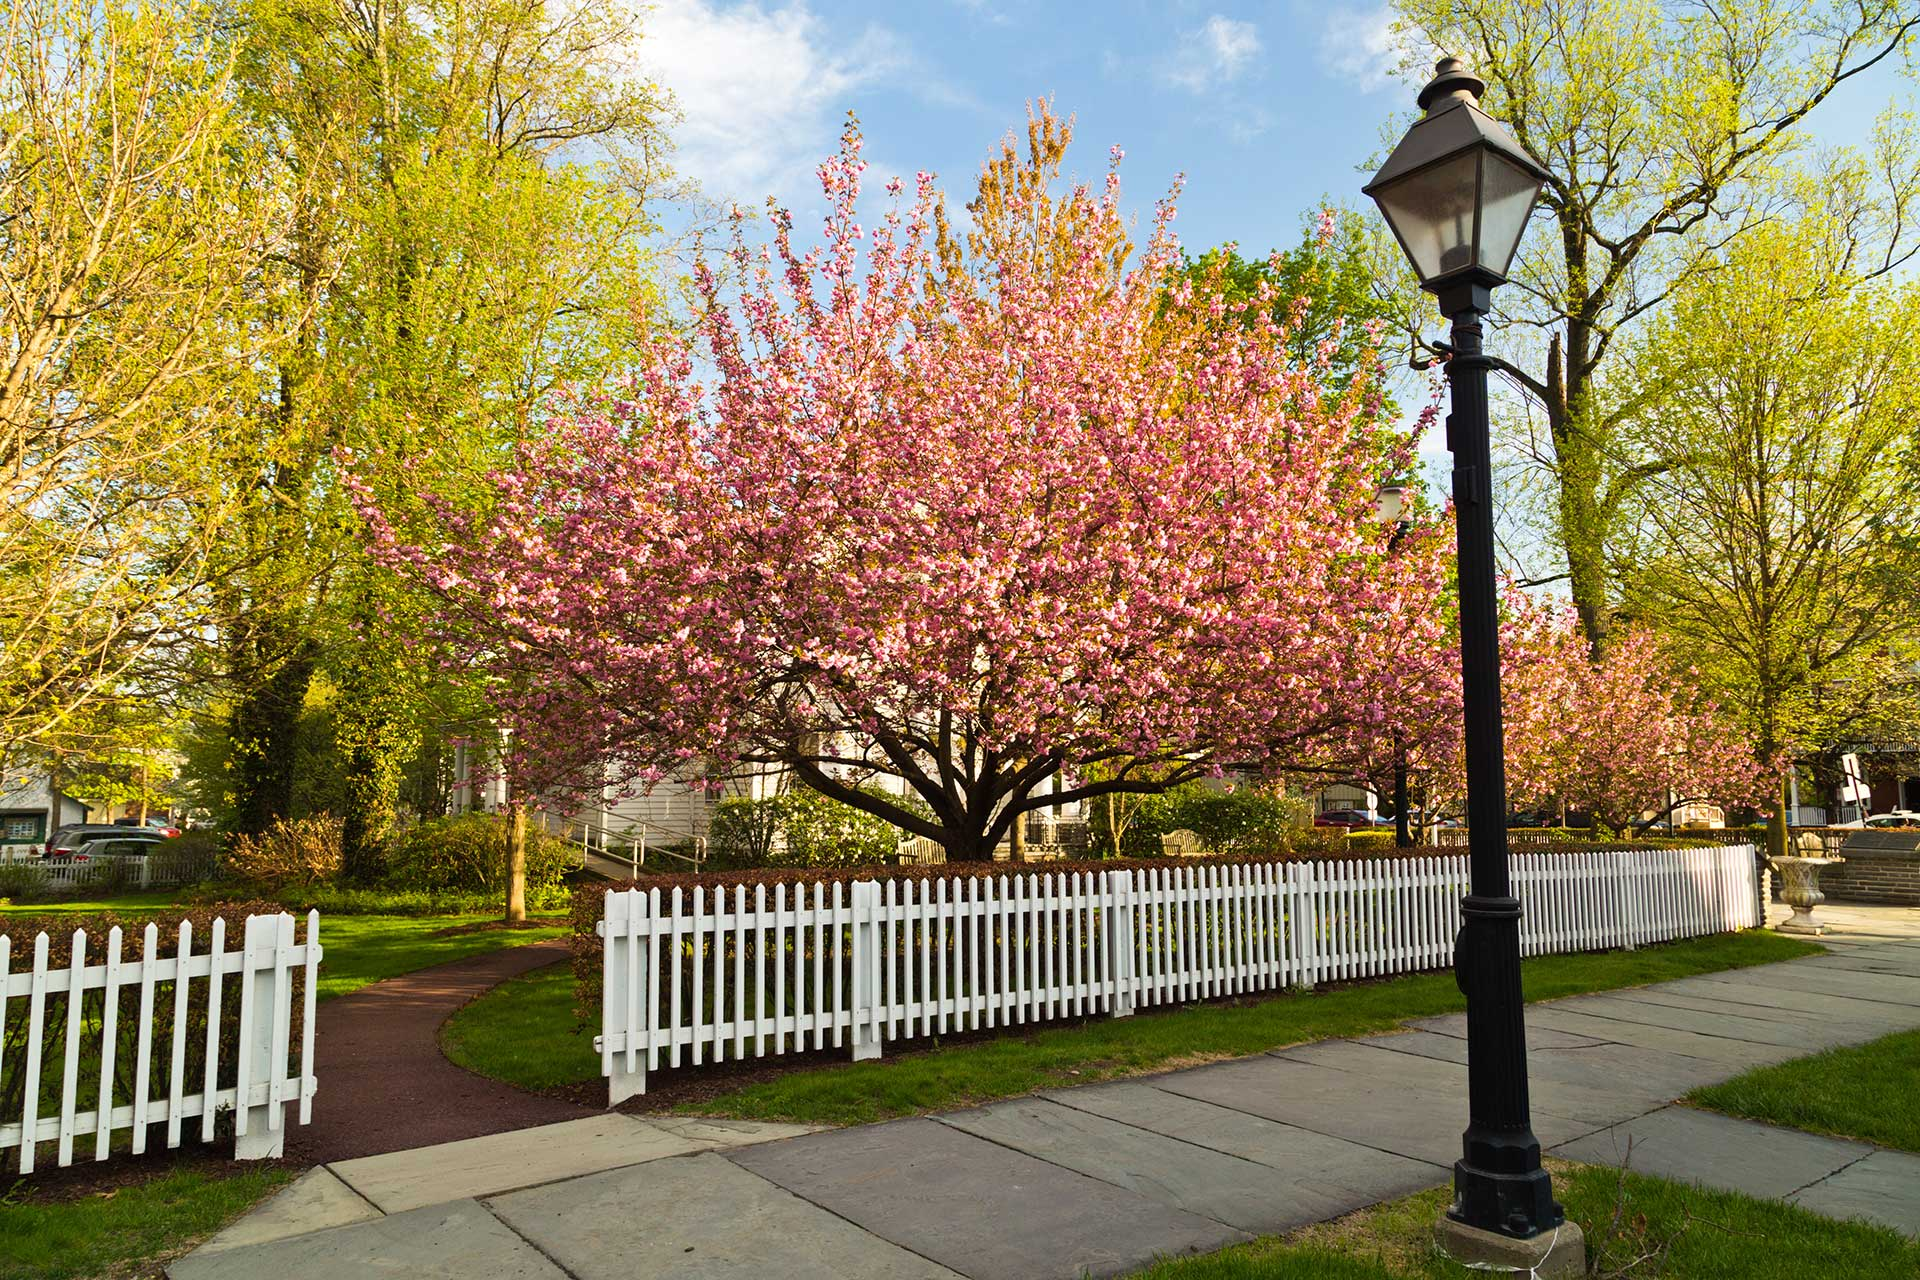 spring flowering trees behind a white picket fence and sidewalk with lantern post